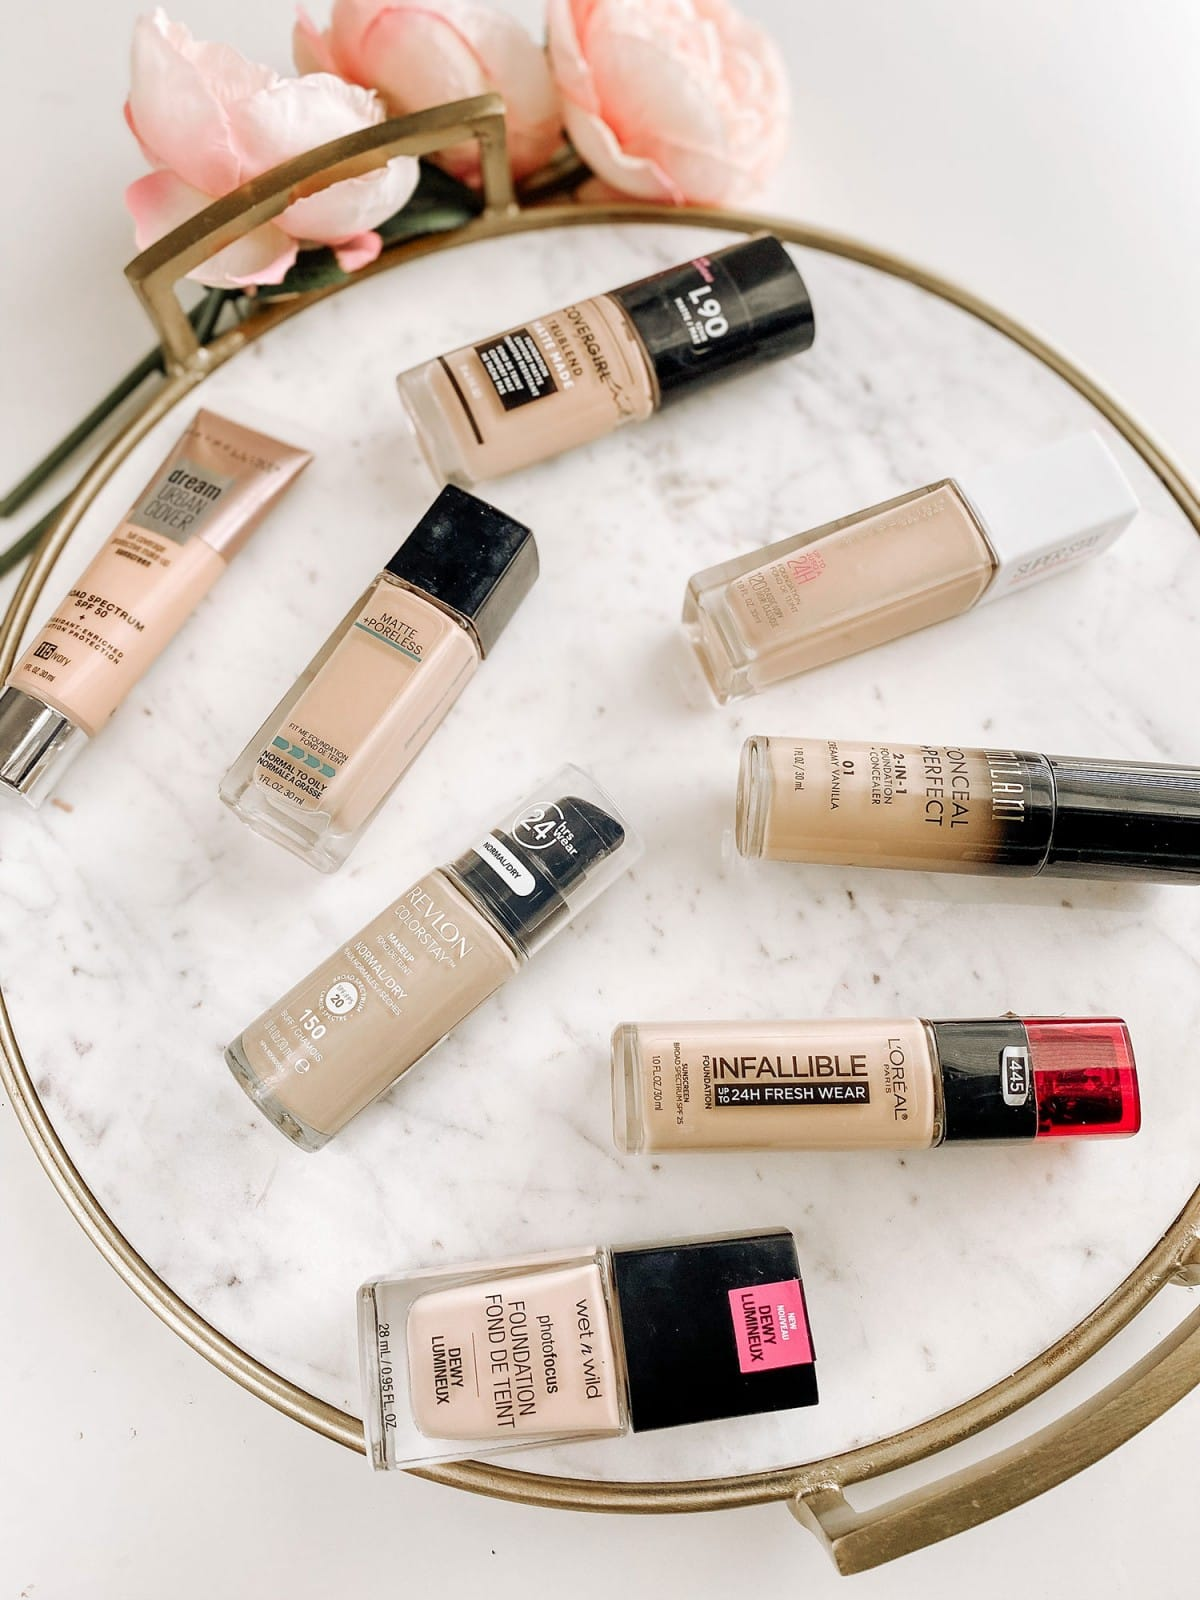 Looking for the best drugstore foundation? Houston beauty blogger Meg O. shares 8 full coverage drugstore foundation options.